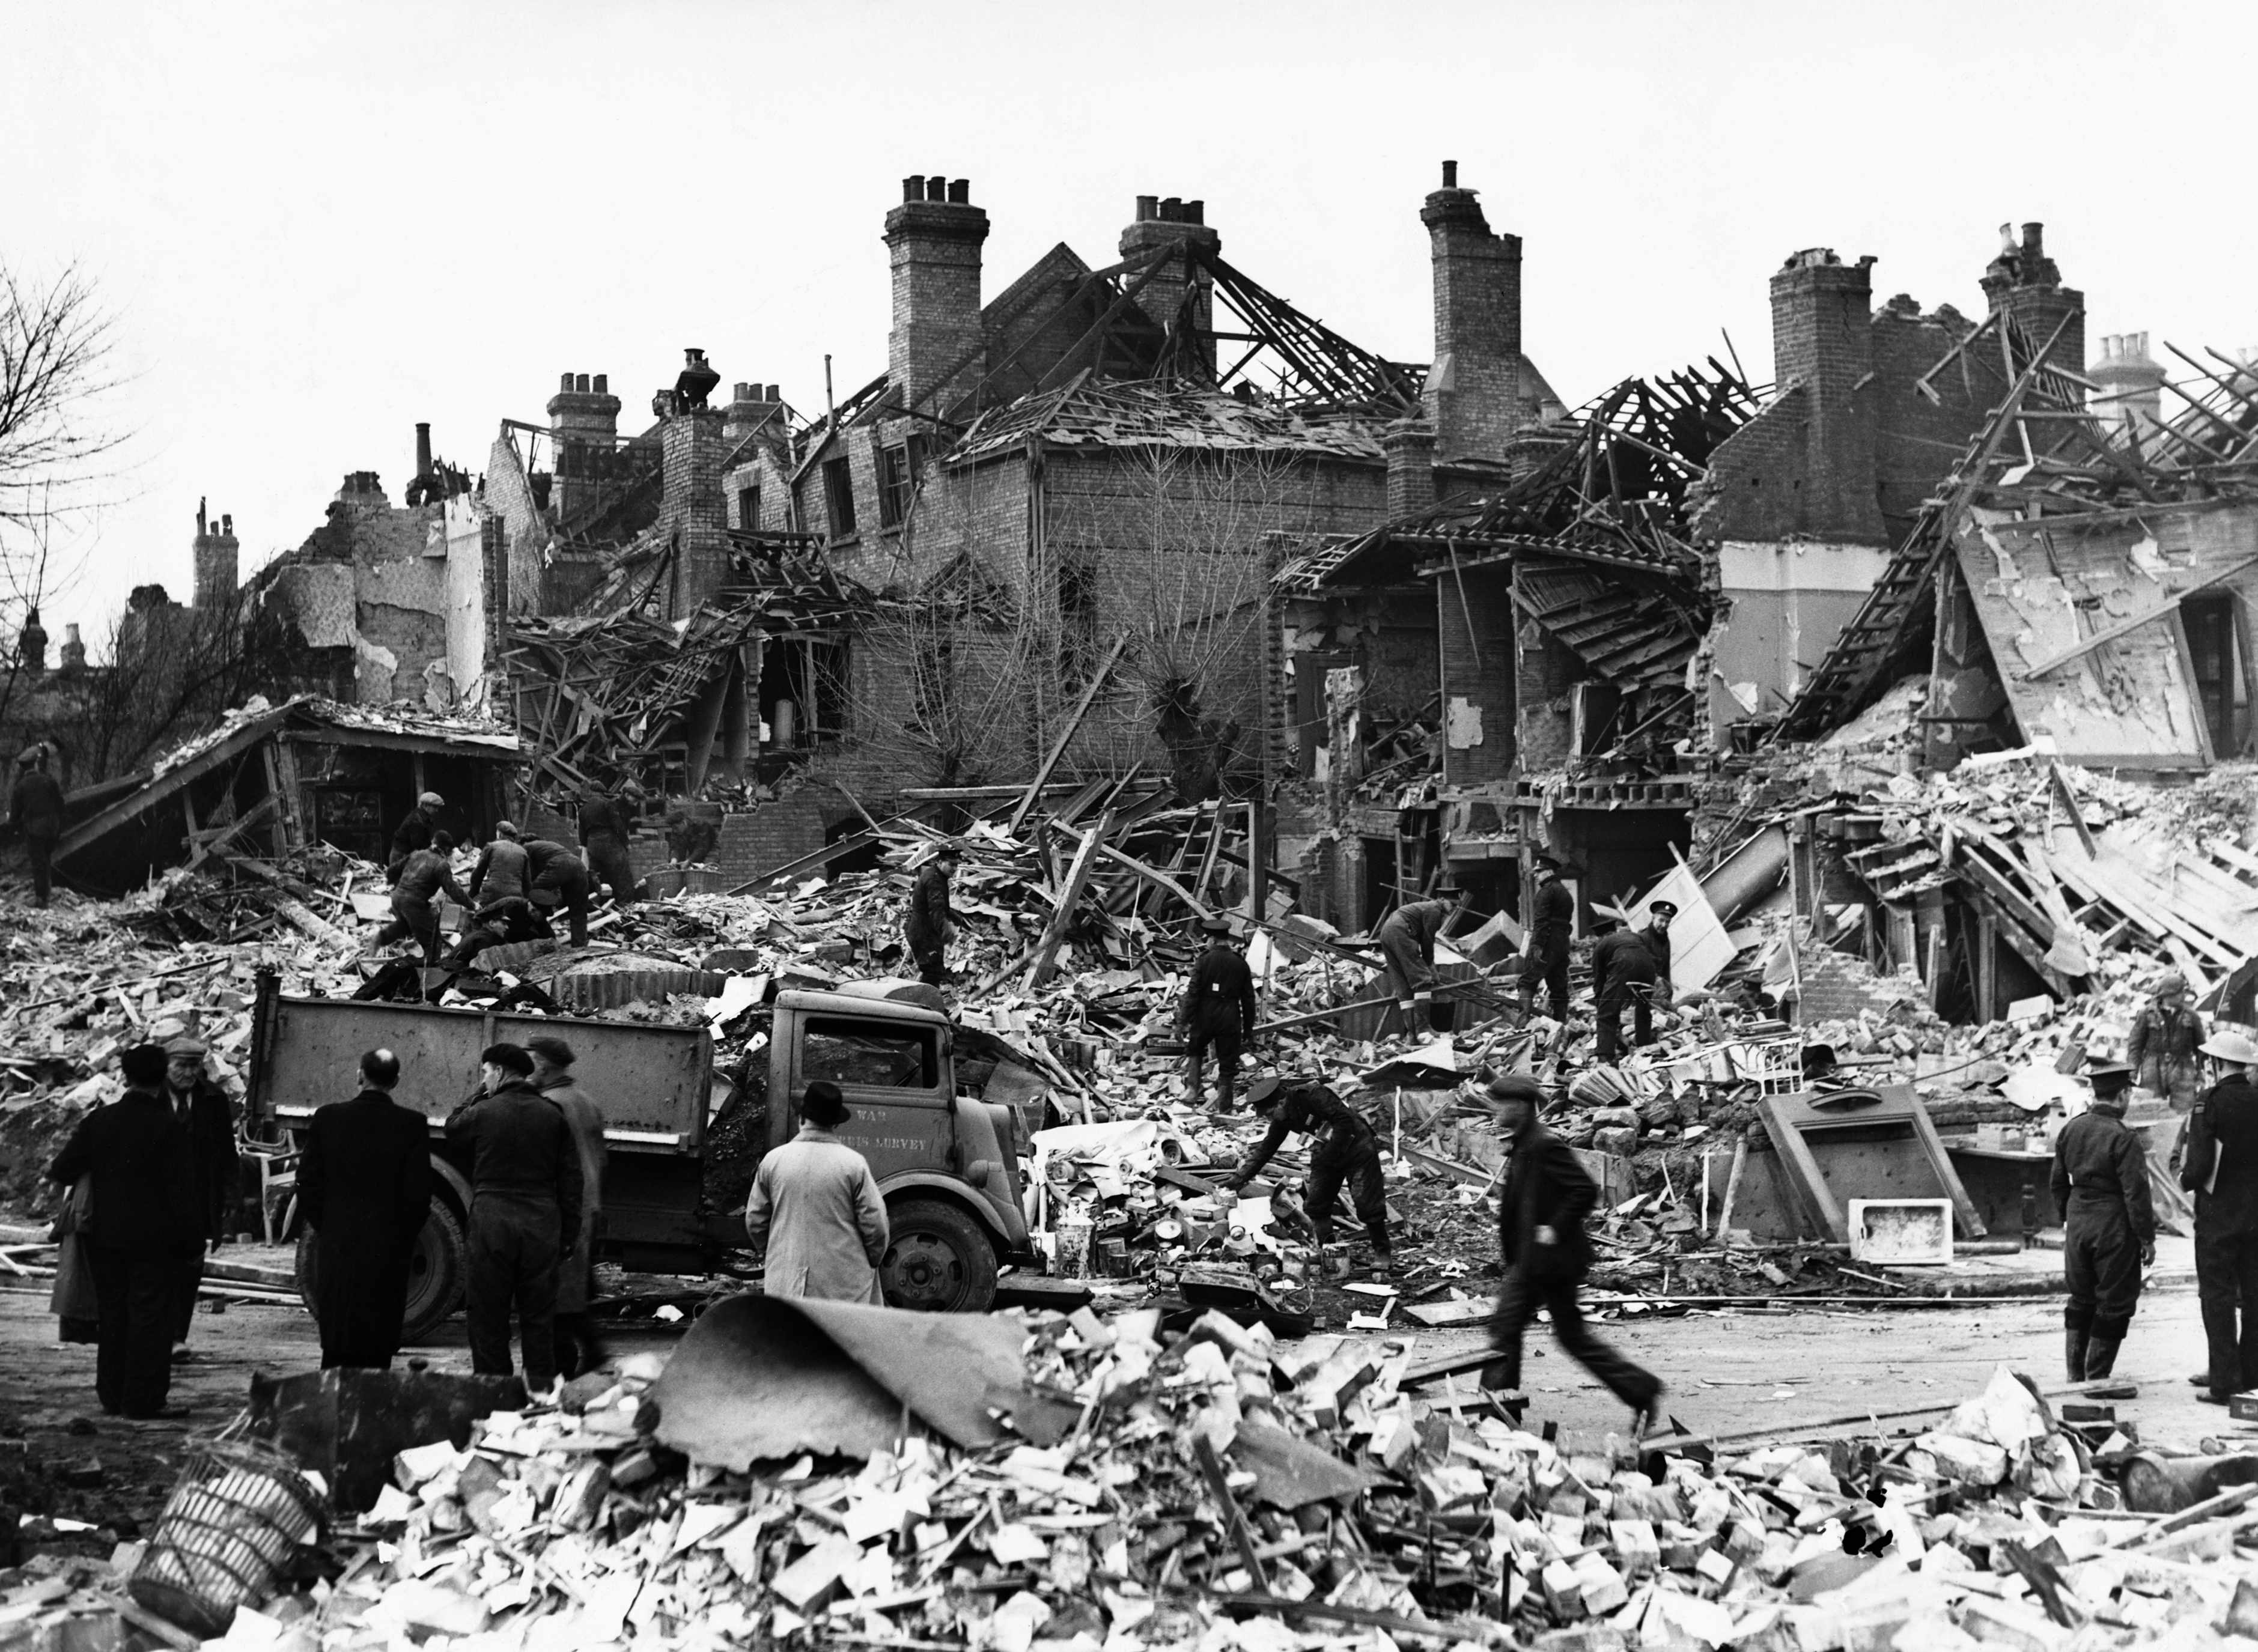 Clean-up crews salvaging what they can from the ruins of buildings in Hornsey, a north London suburb, 1944. (Photo by © Hulton-Deutsch Collection/CORBIS/Corbis via Getty Images)